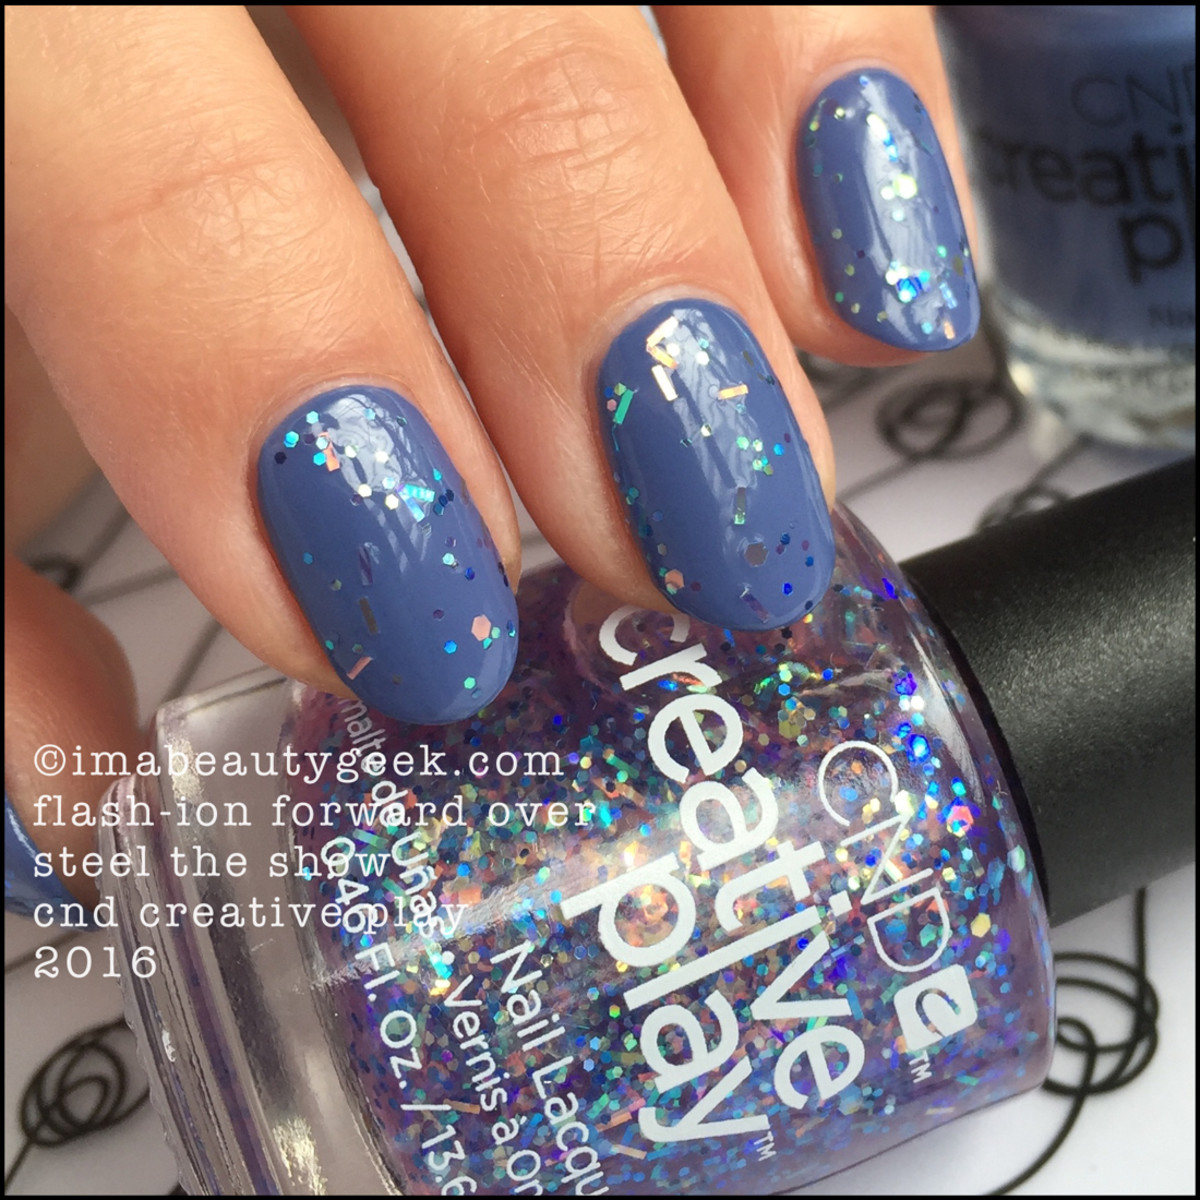 CND Creative Play Flashion Forward over Steel the Show_CND Creative Play Nail Lacquer Swatches